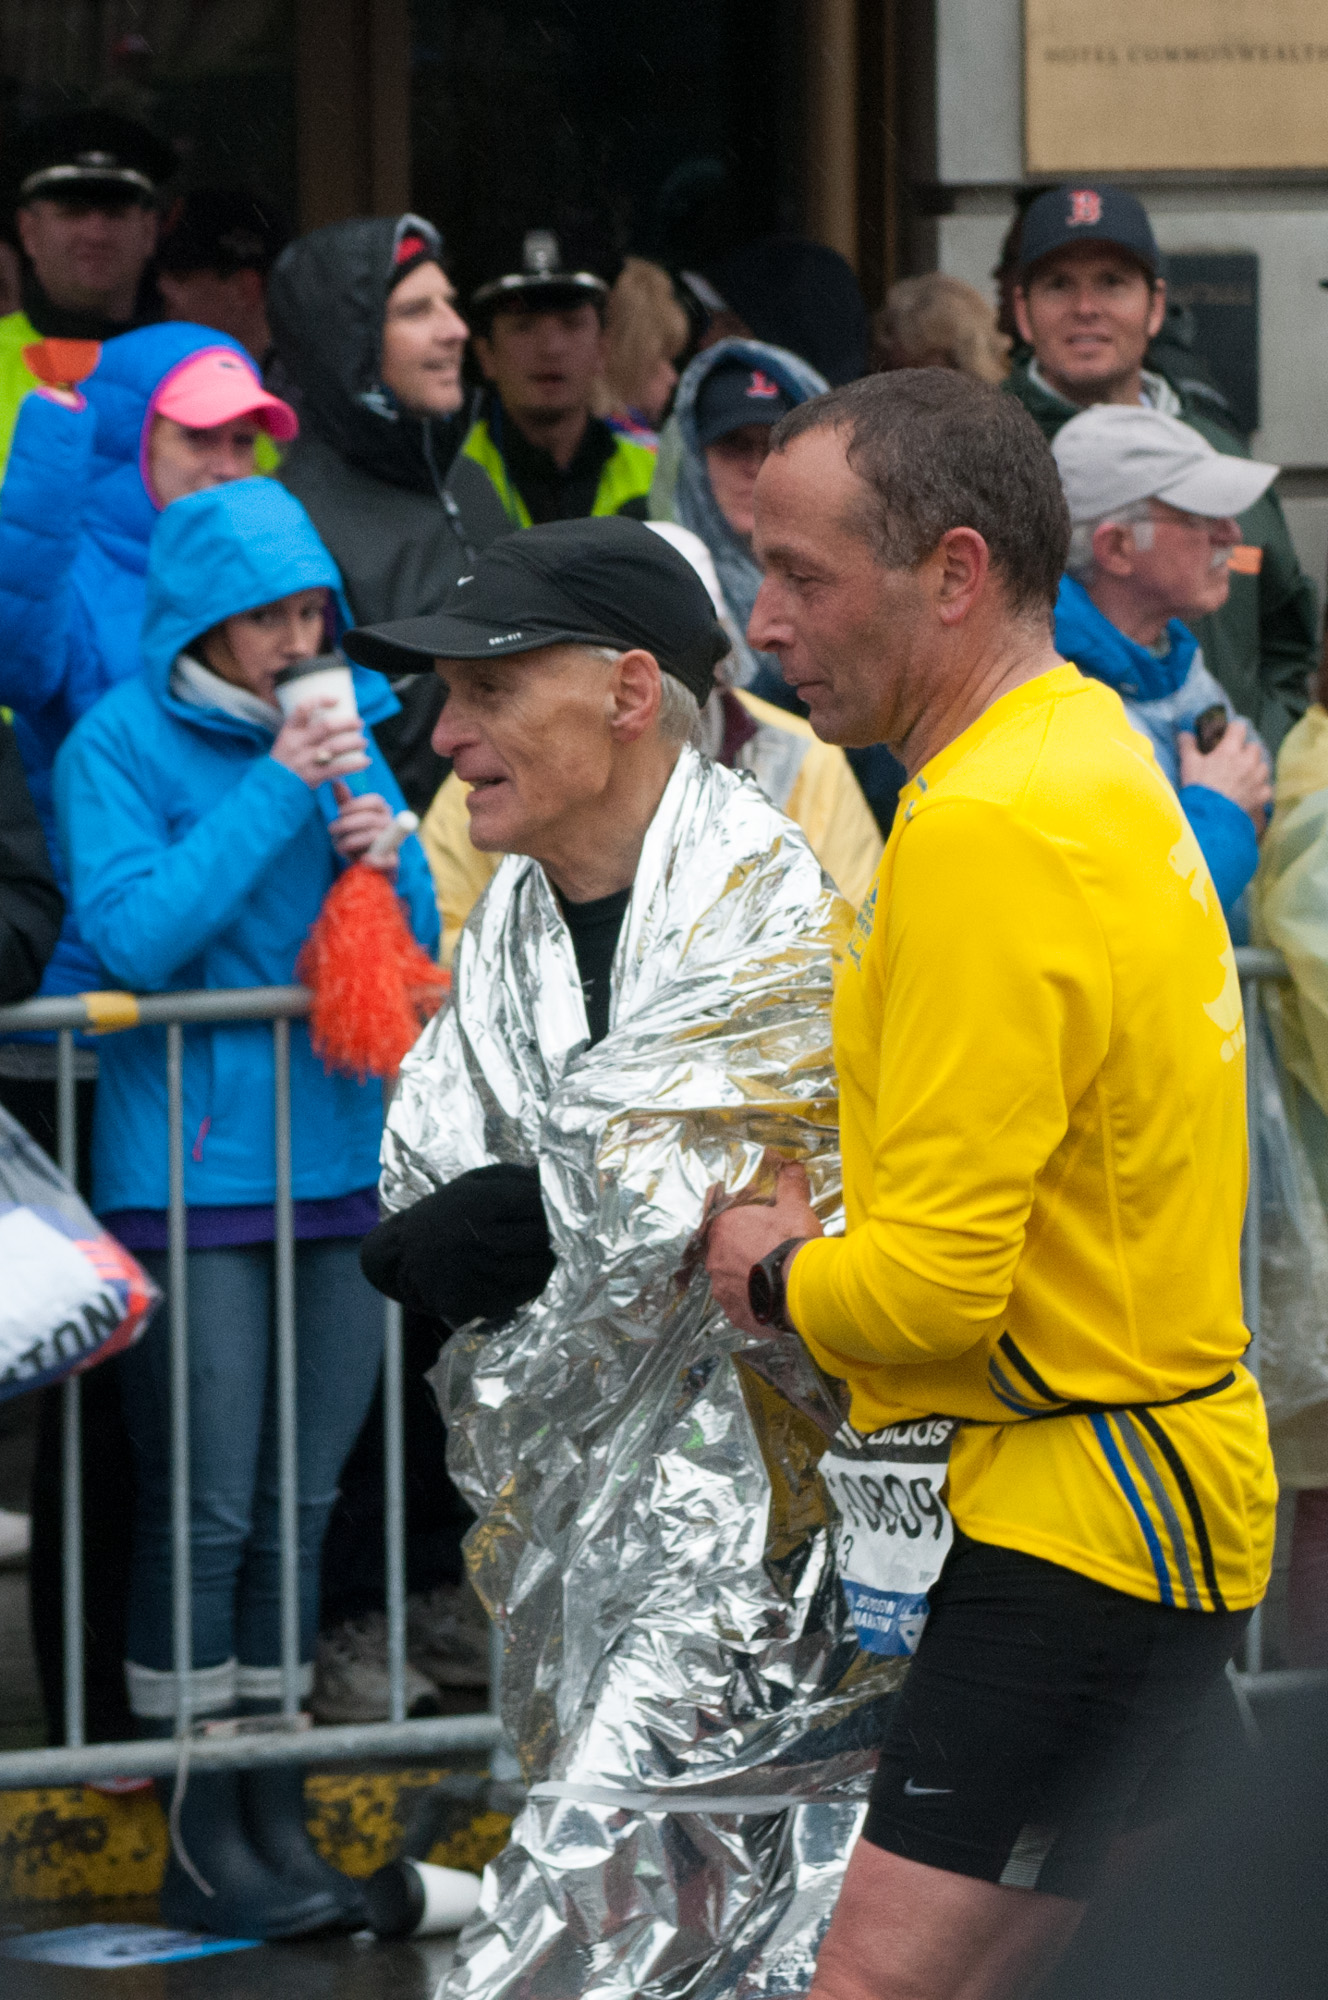 The runner in yellow was helping the runner in mylar finish